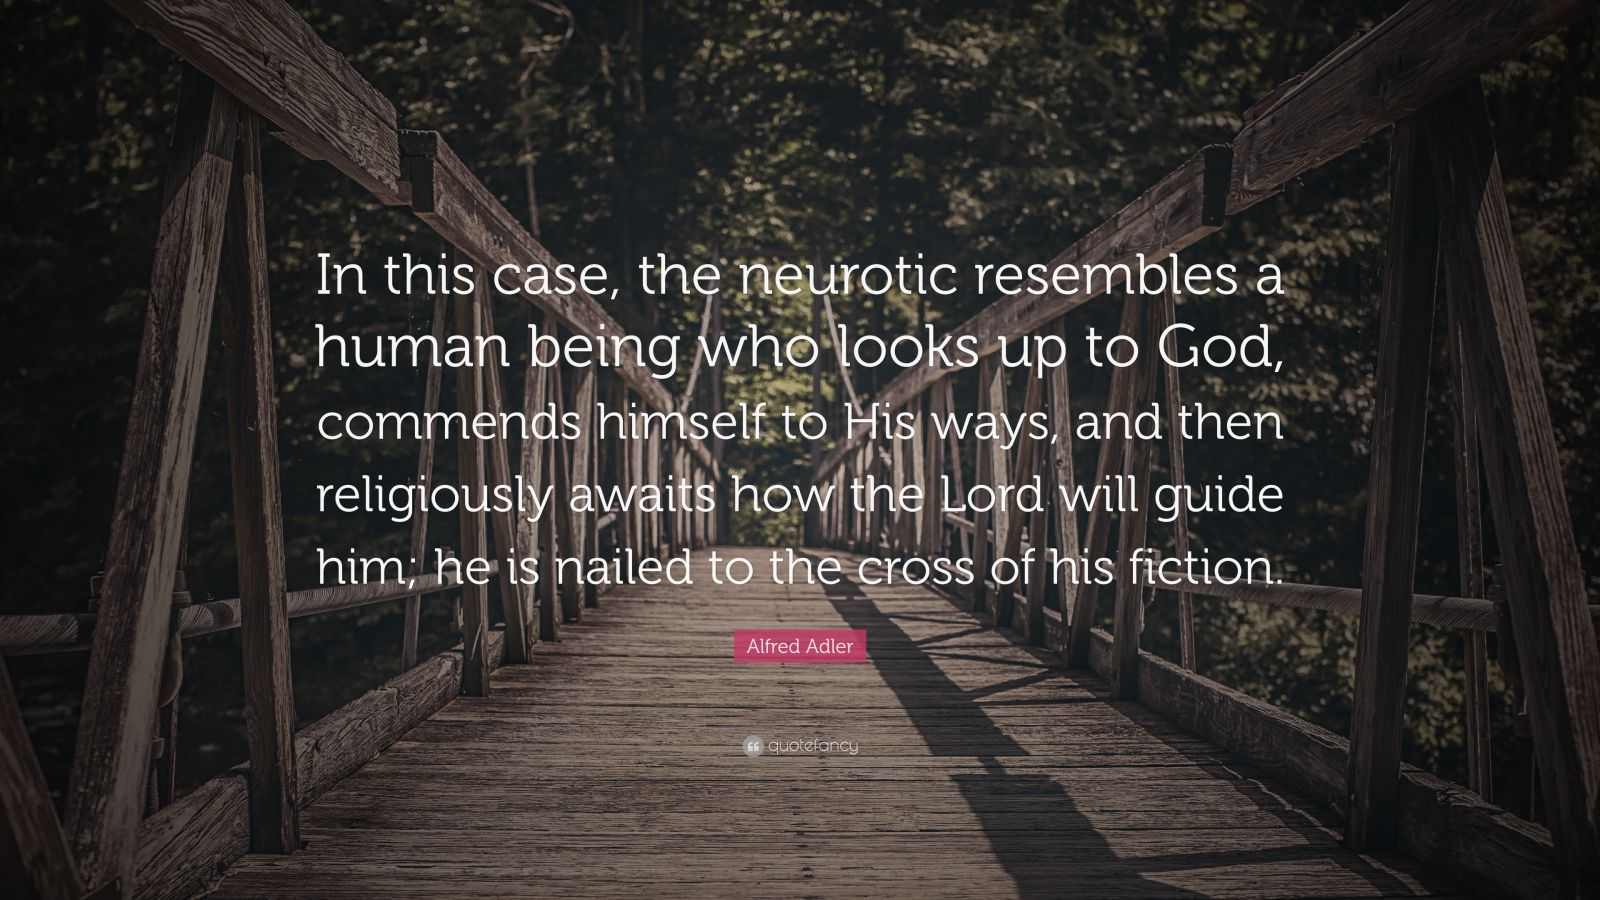 """Alfred Adler Quote: """"In this case, the neurotic resembles a human being who looks up to God, commends himself to His ways, and then religiously awaits how the Lord will guide him; he is nailed to the cross of his fiction."""""""